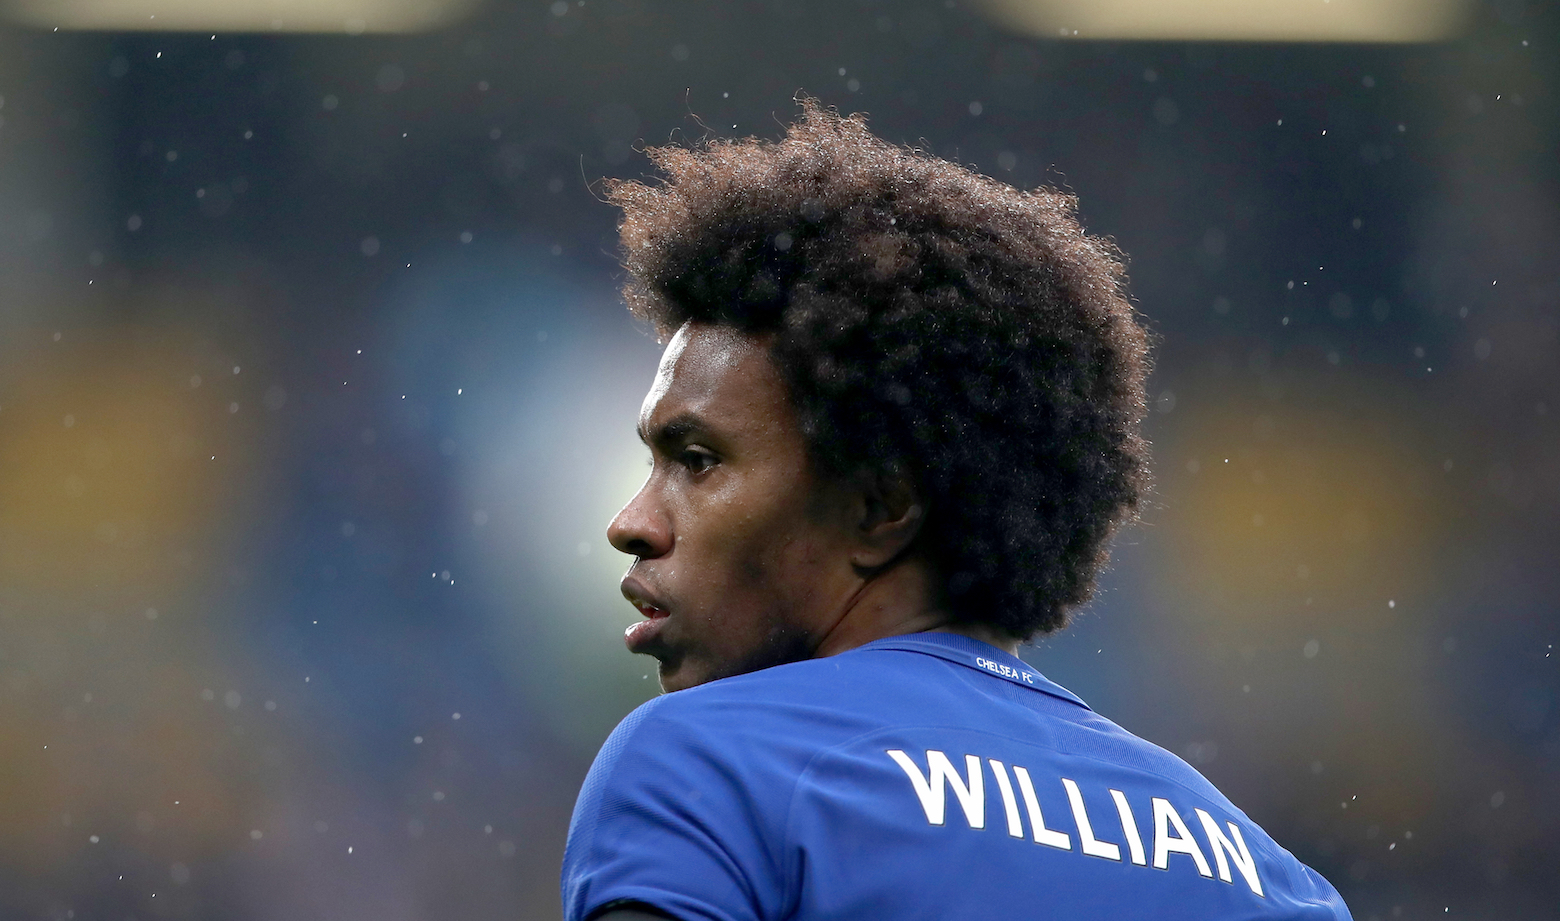 Why Willian wouldn't be a bad signing…but a mediocre and boring one